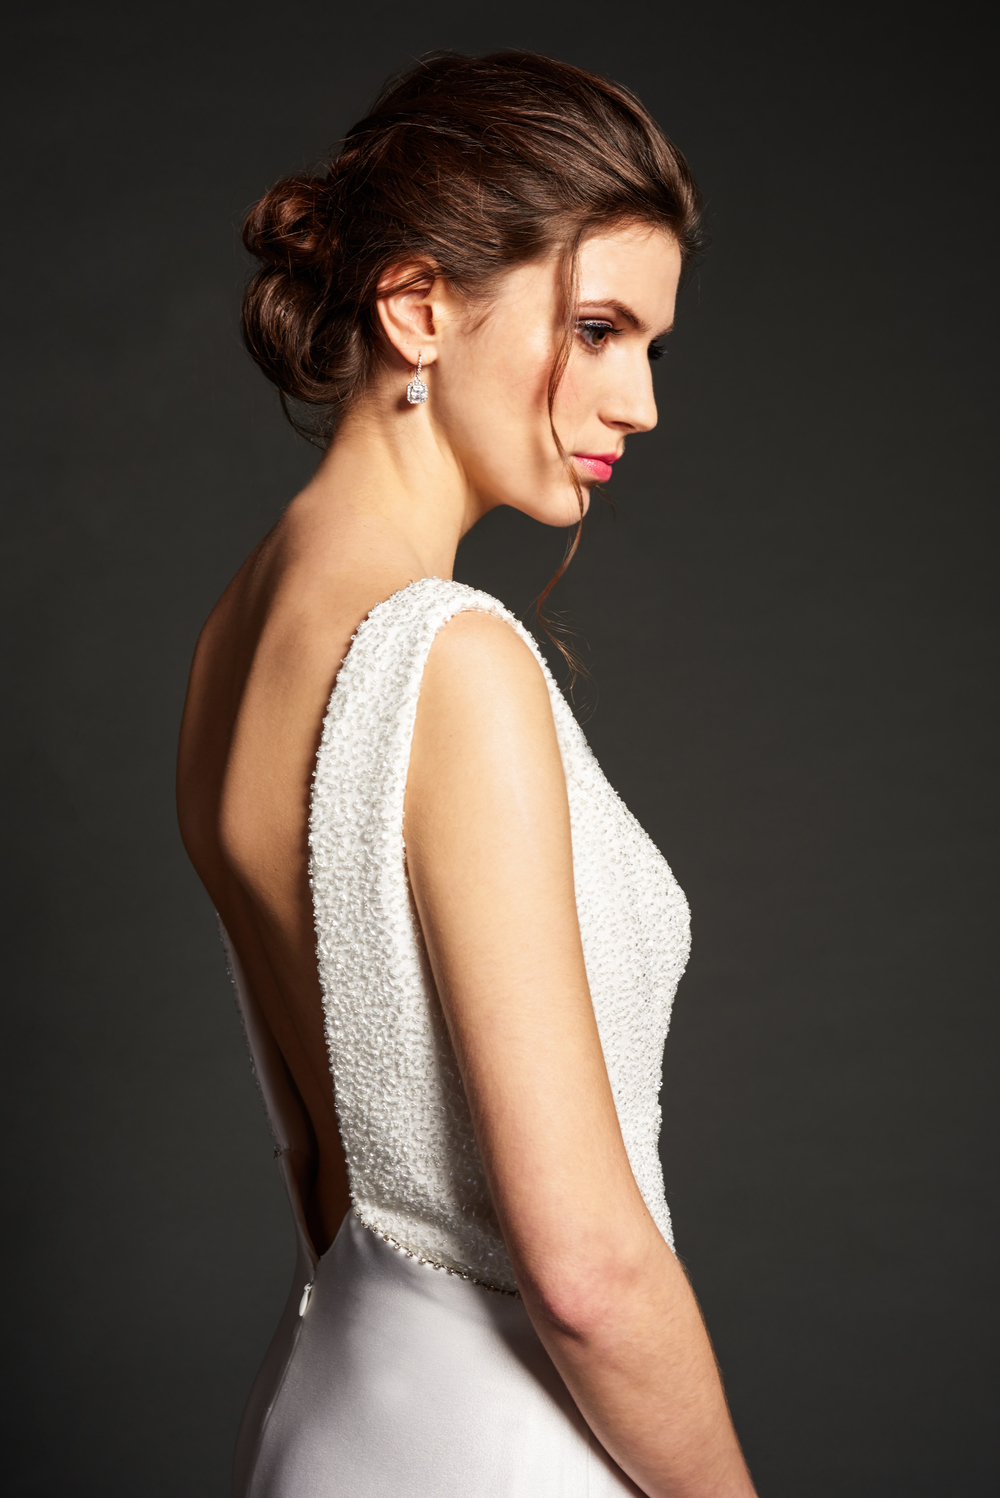 160213_GEMMA LEAKEY BRIDAL - DRESS 05-03.jpg